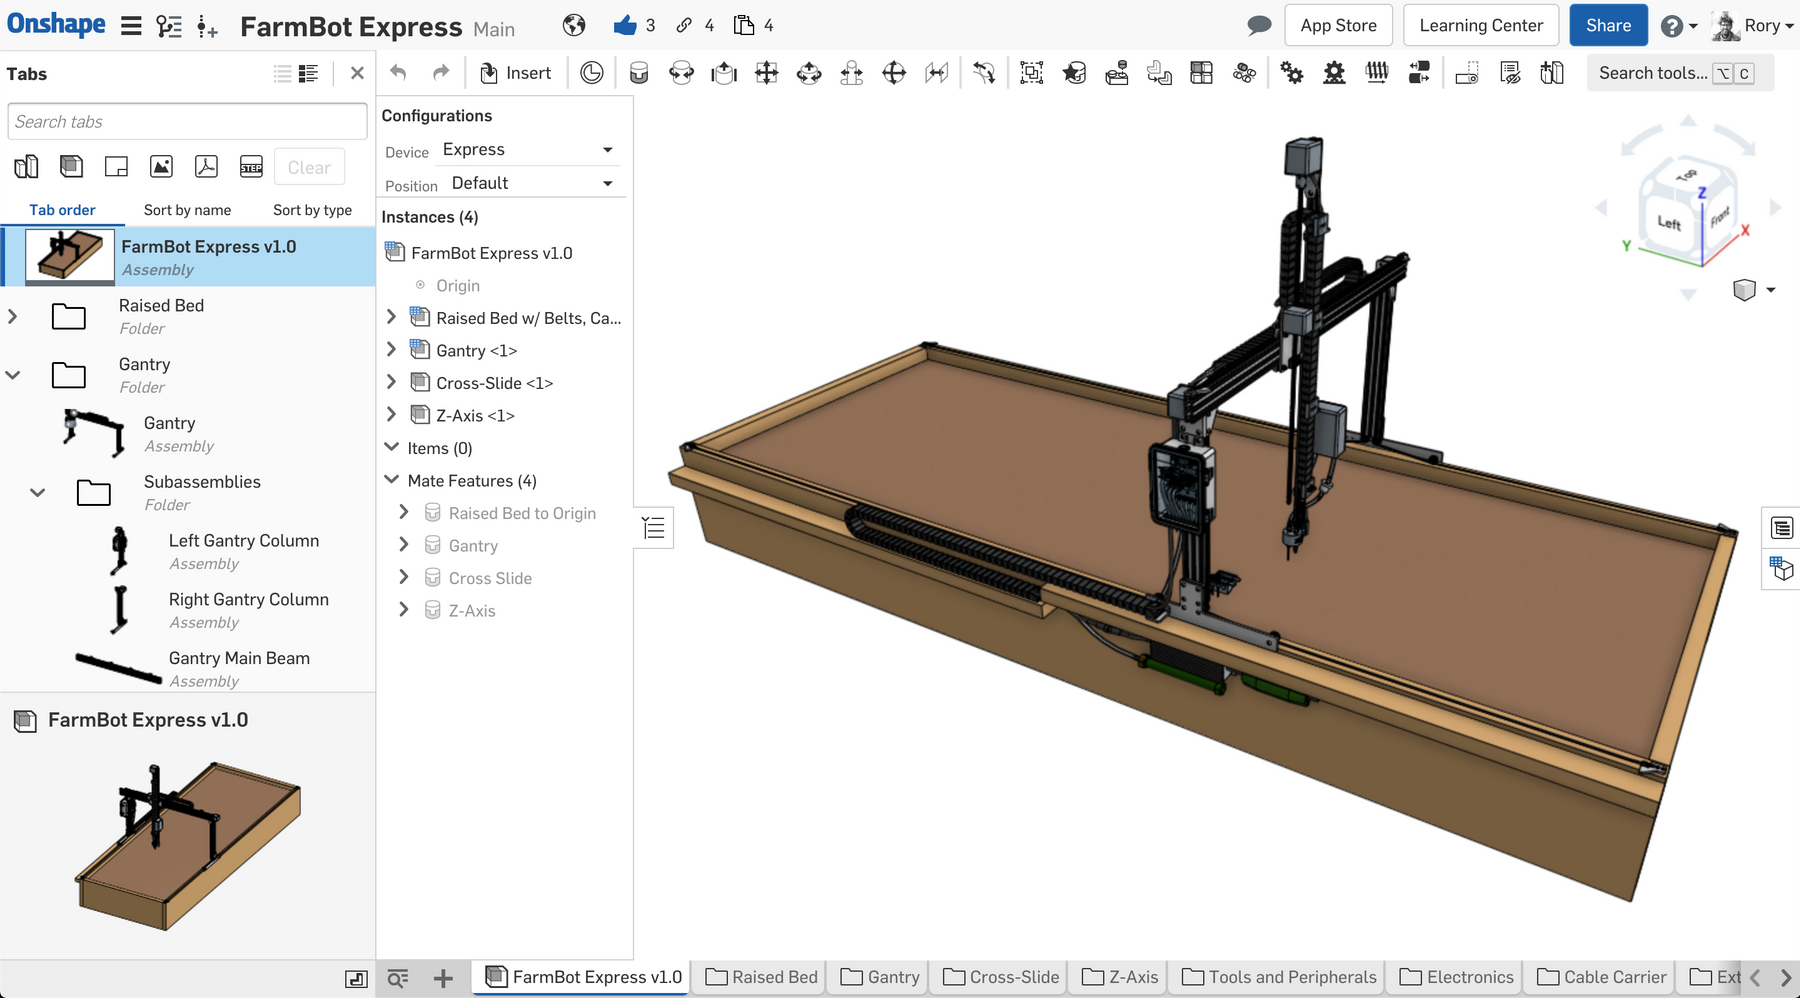 FarmBot Express v1.0 CAD Models: Now Available